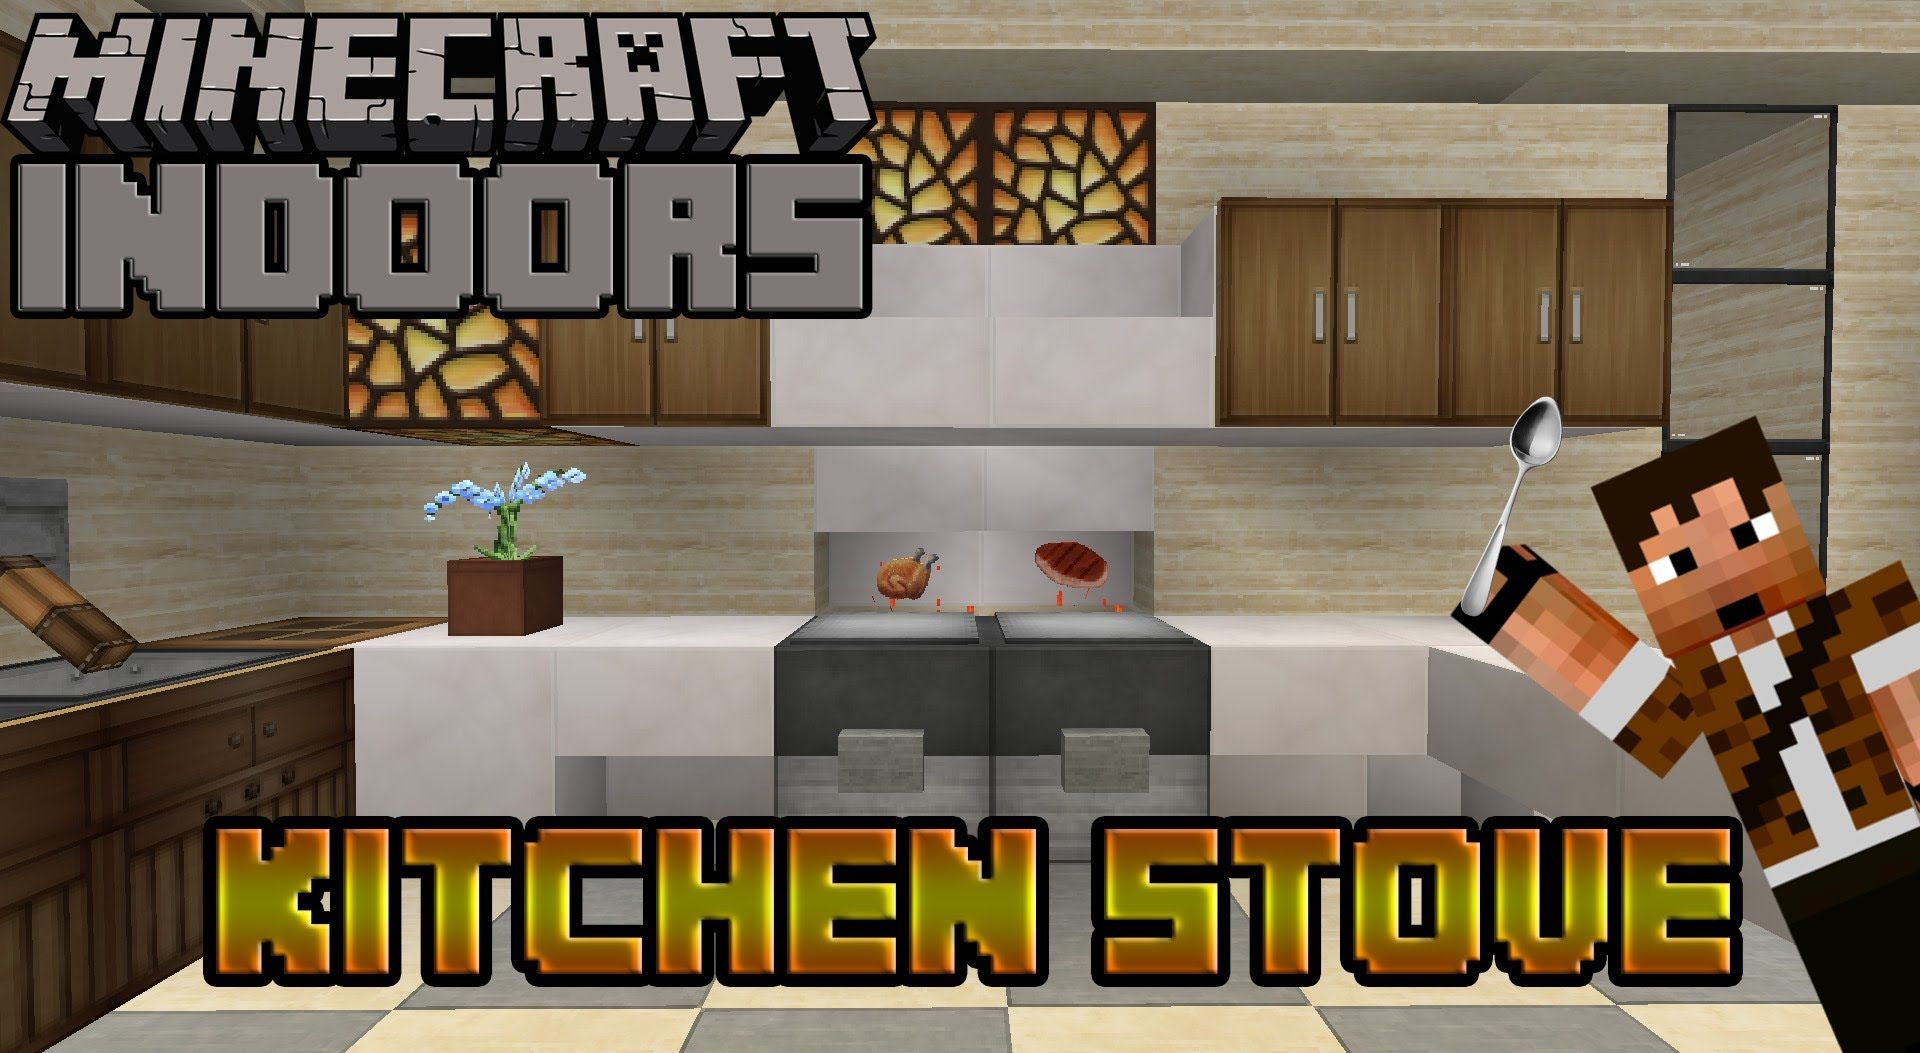 How to Build a Working Oven - Minecraft Indoors (Kitchen ...